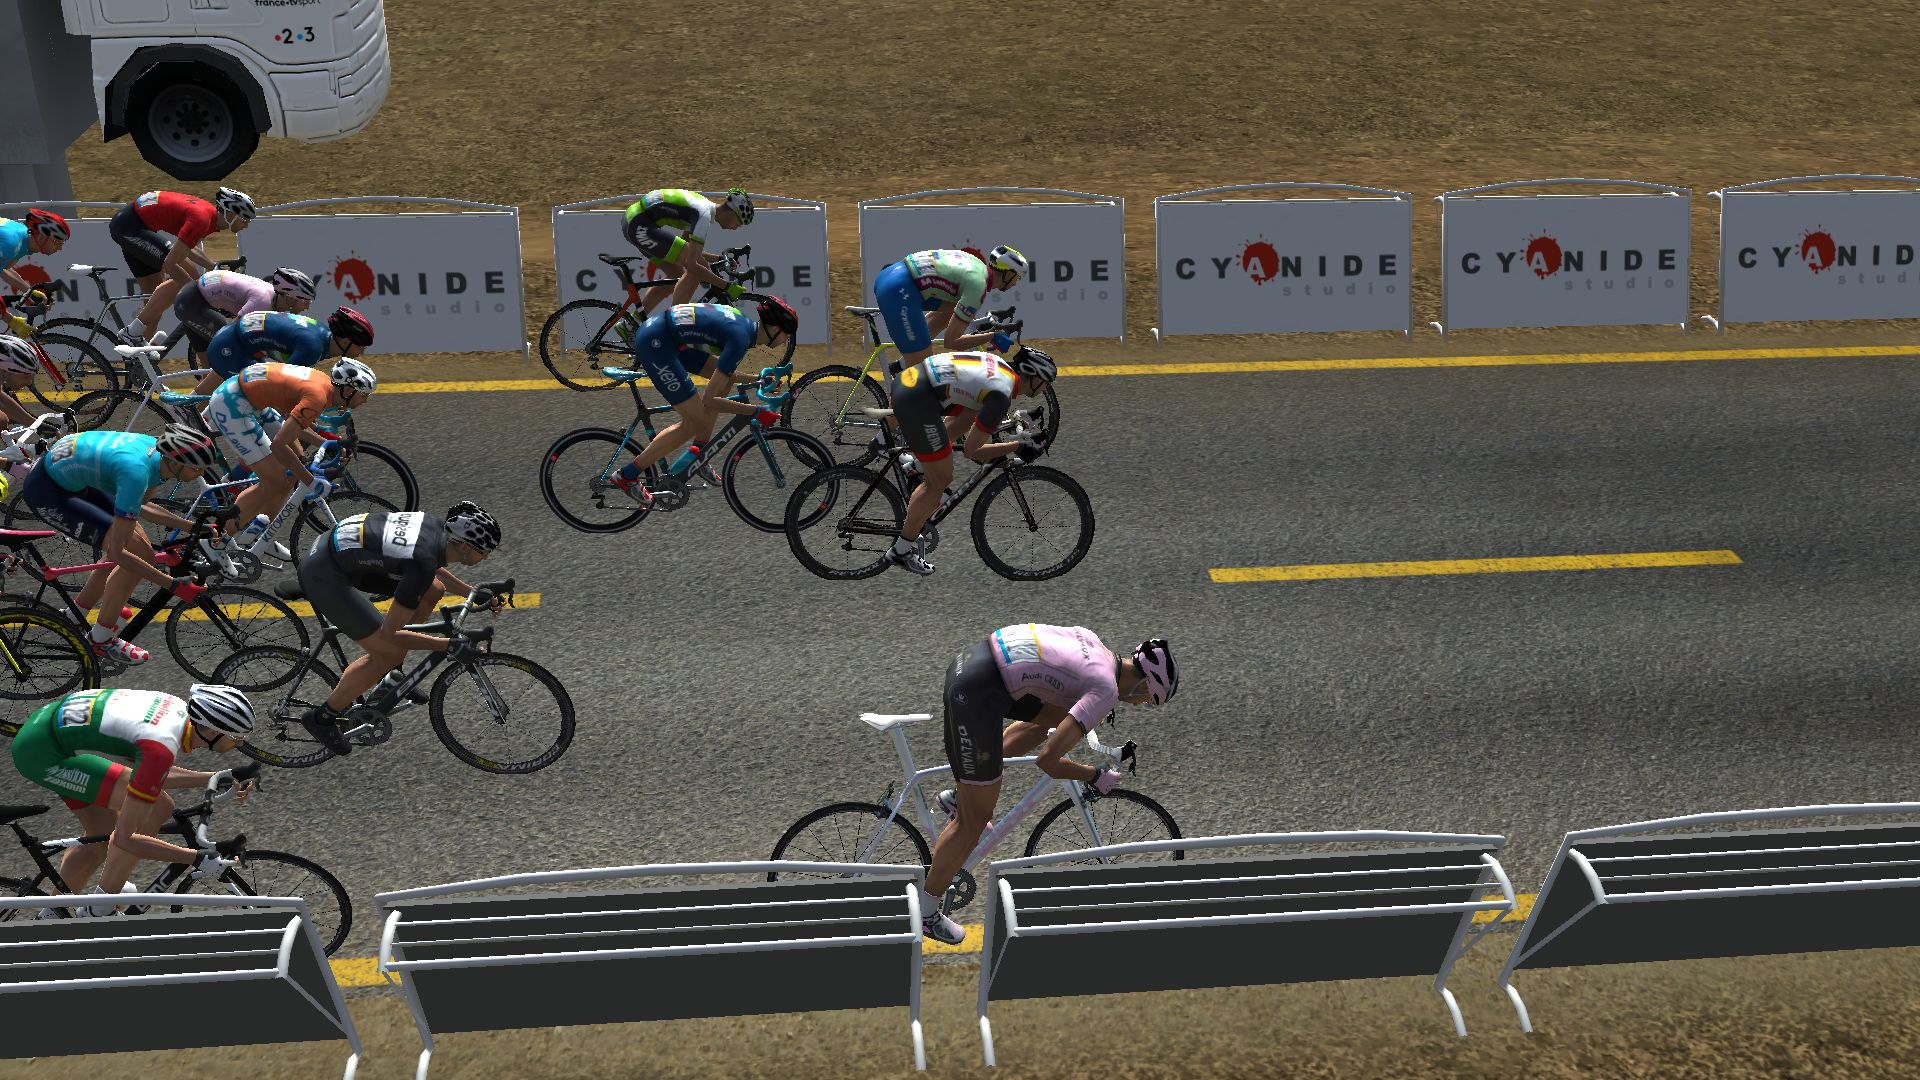 pcmdaily.com/images/mg/2019/Races/C1/TdU/mg19_tdu_05_PCM0187.jpg